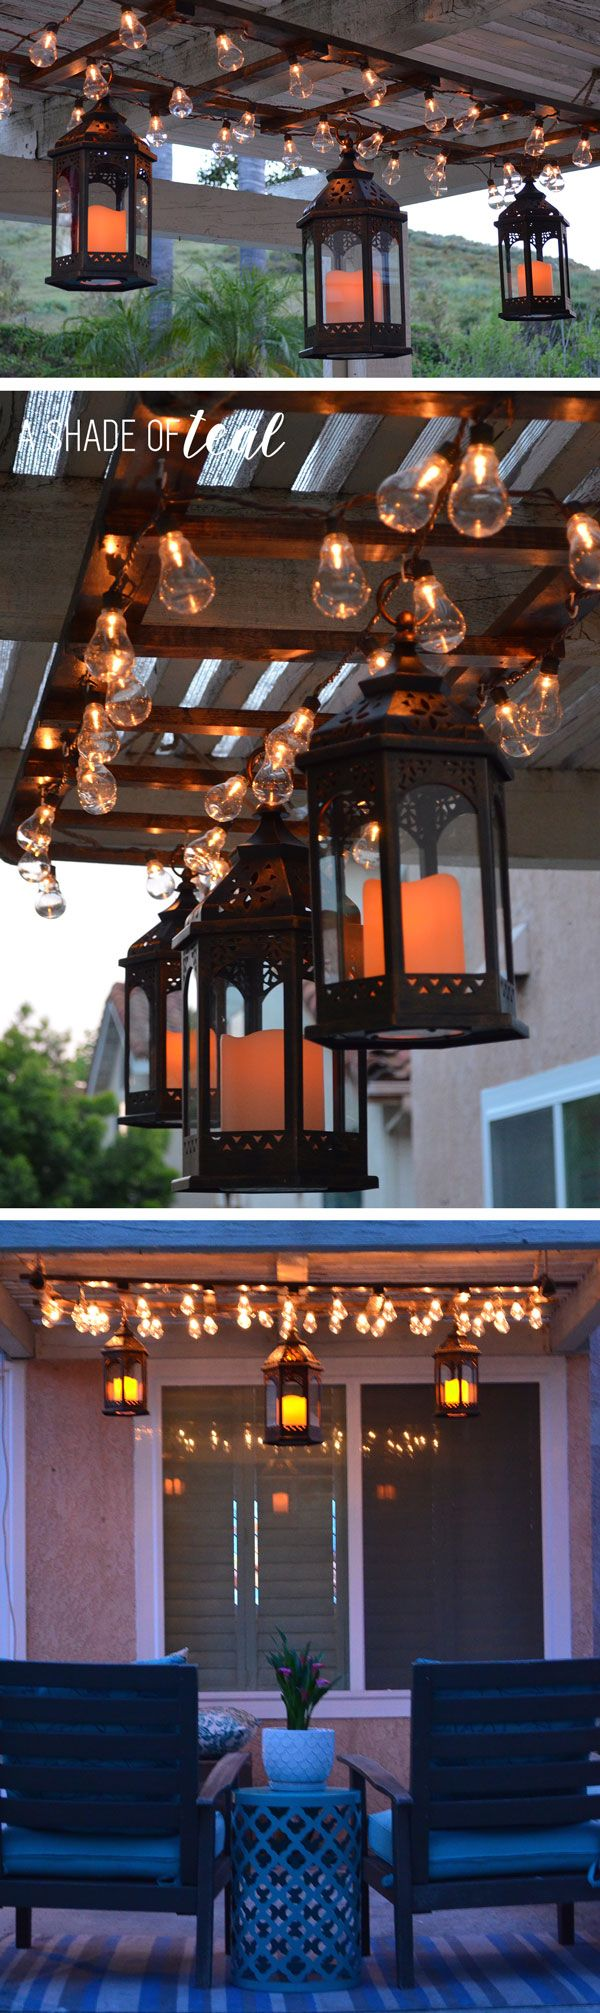 118 Best Outdoor Lighting Ideas Images On Pinterest | Outdoor Lighting,  Garden Deco And Good Ideas